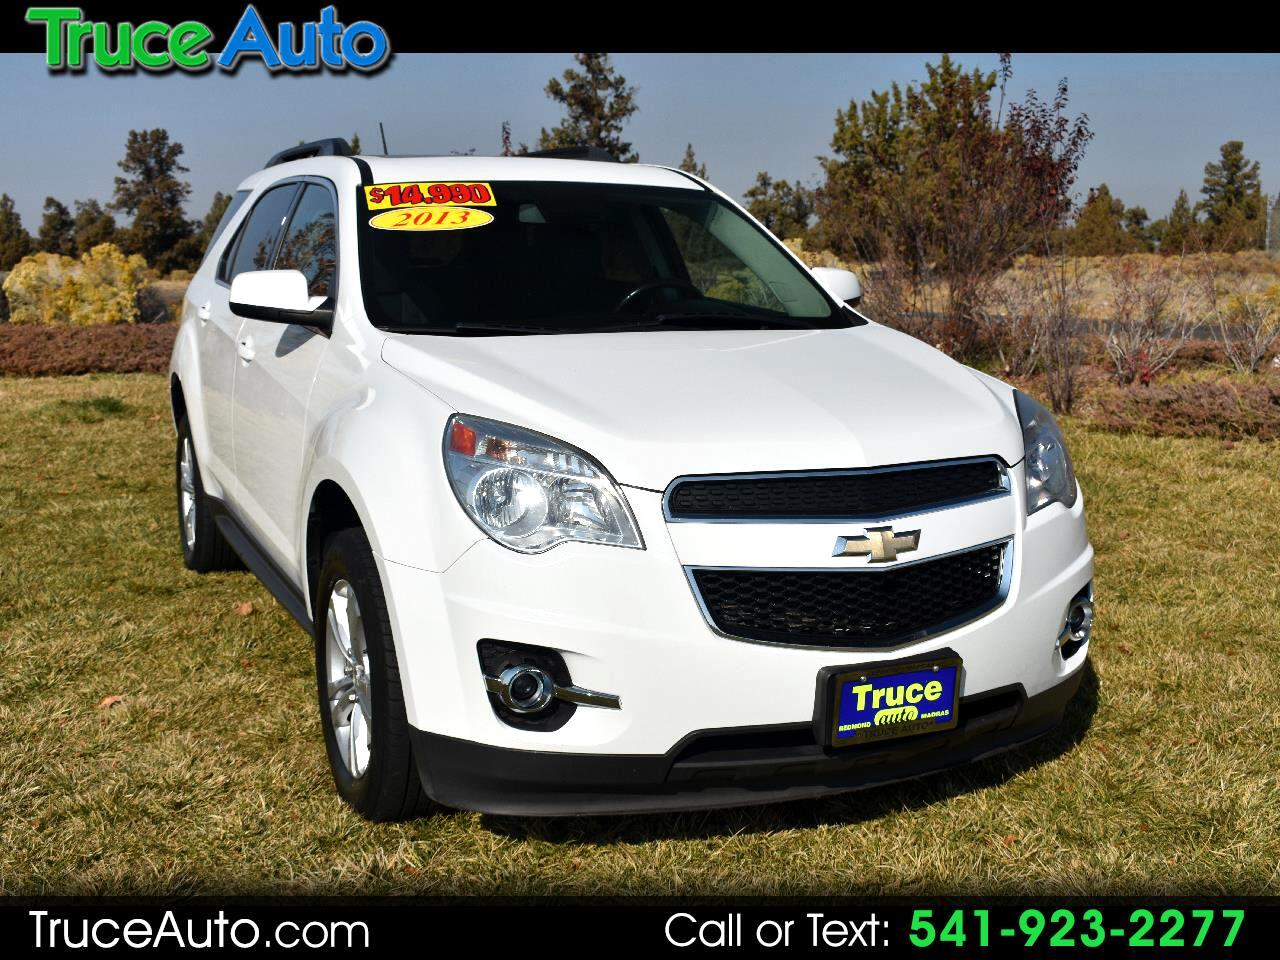 2013 Chevrolet Equinox LT AWD ***WELL MAINTAINED***